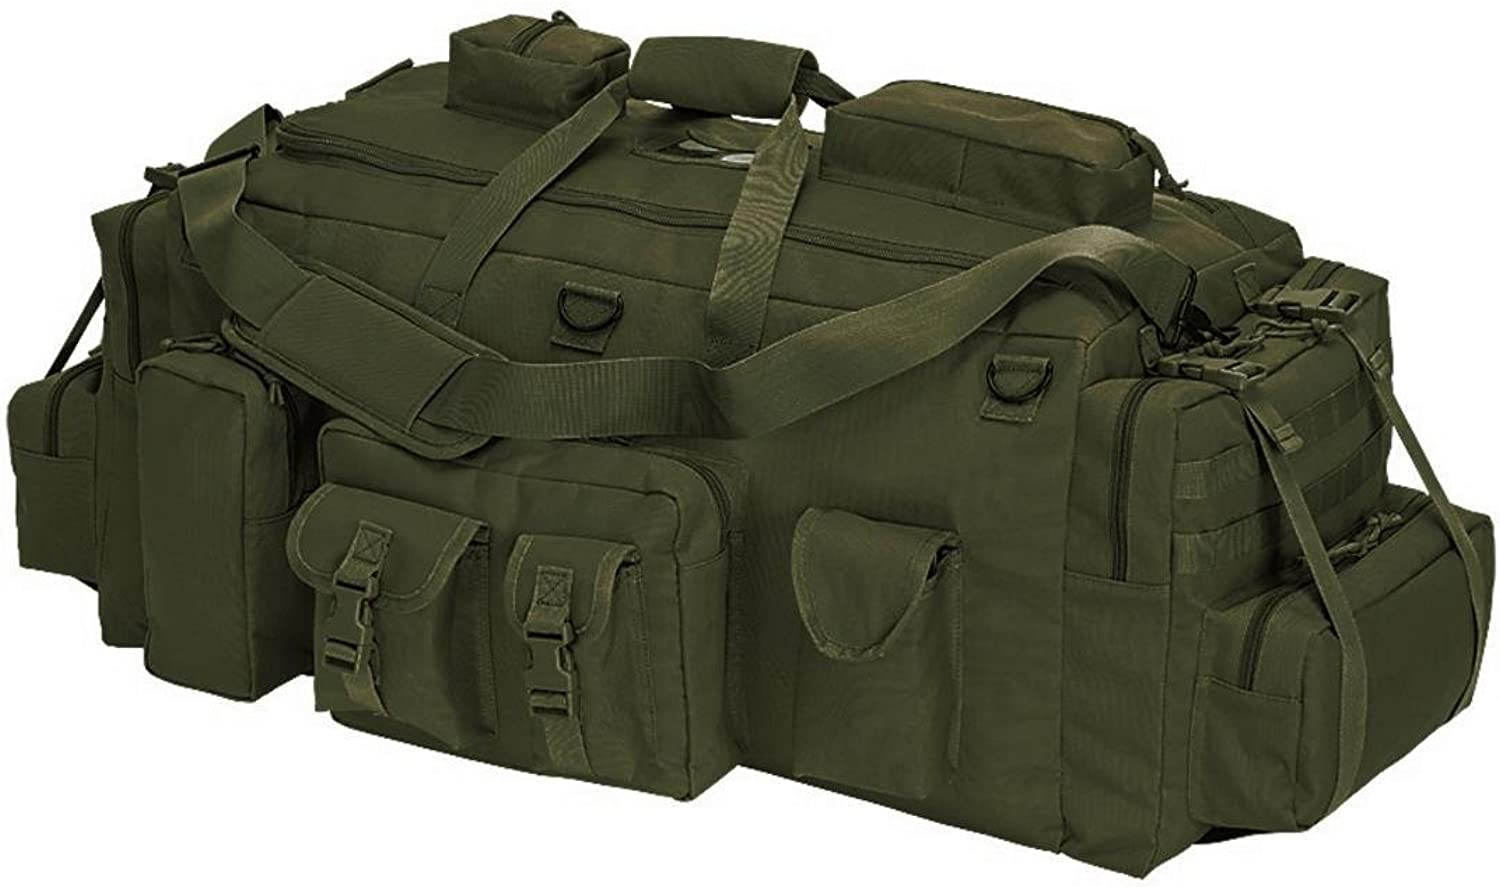 VooDoo Tactical 159685004000 Mojo LoadOut Bag with Backpack Straps, Olive Drab